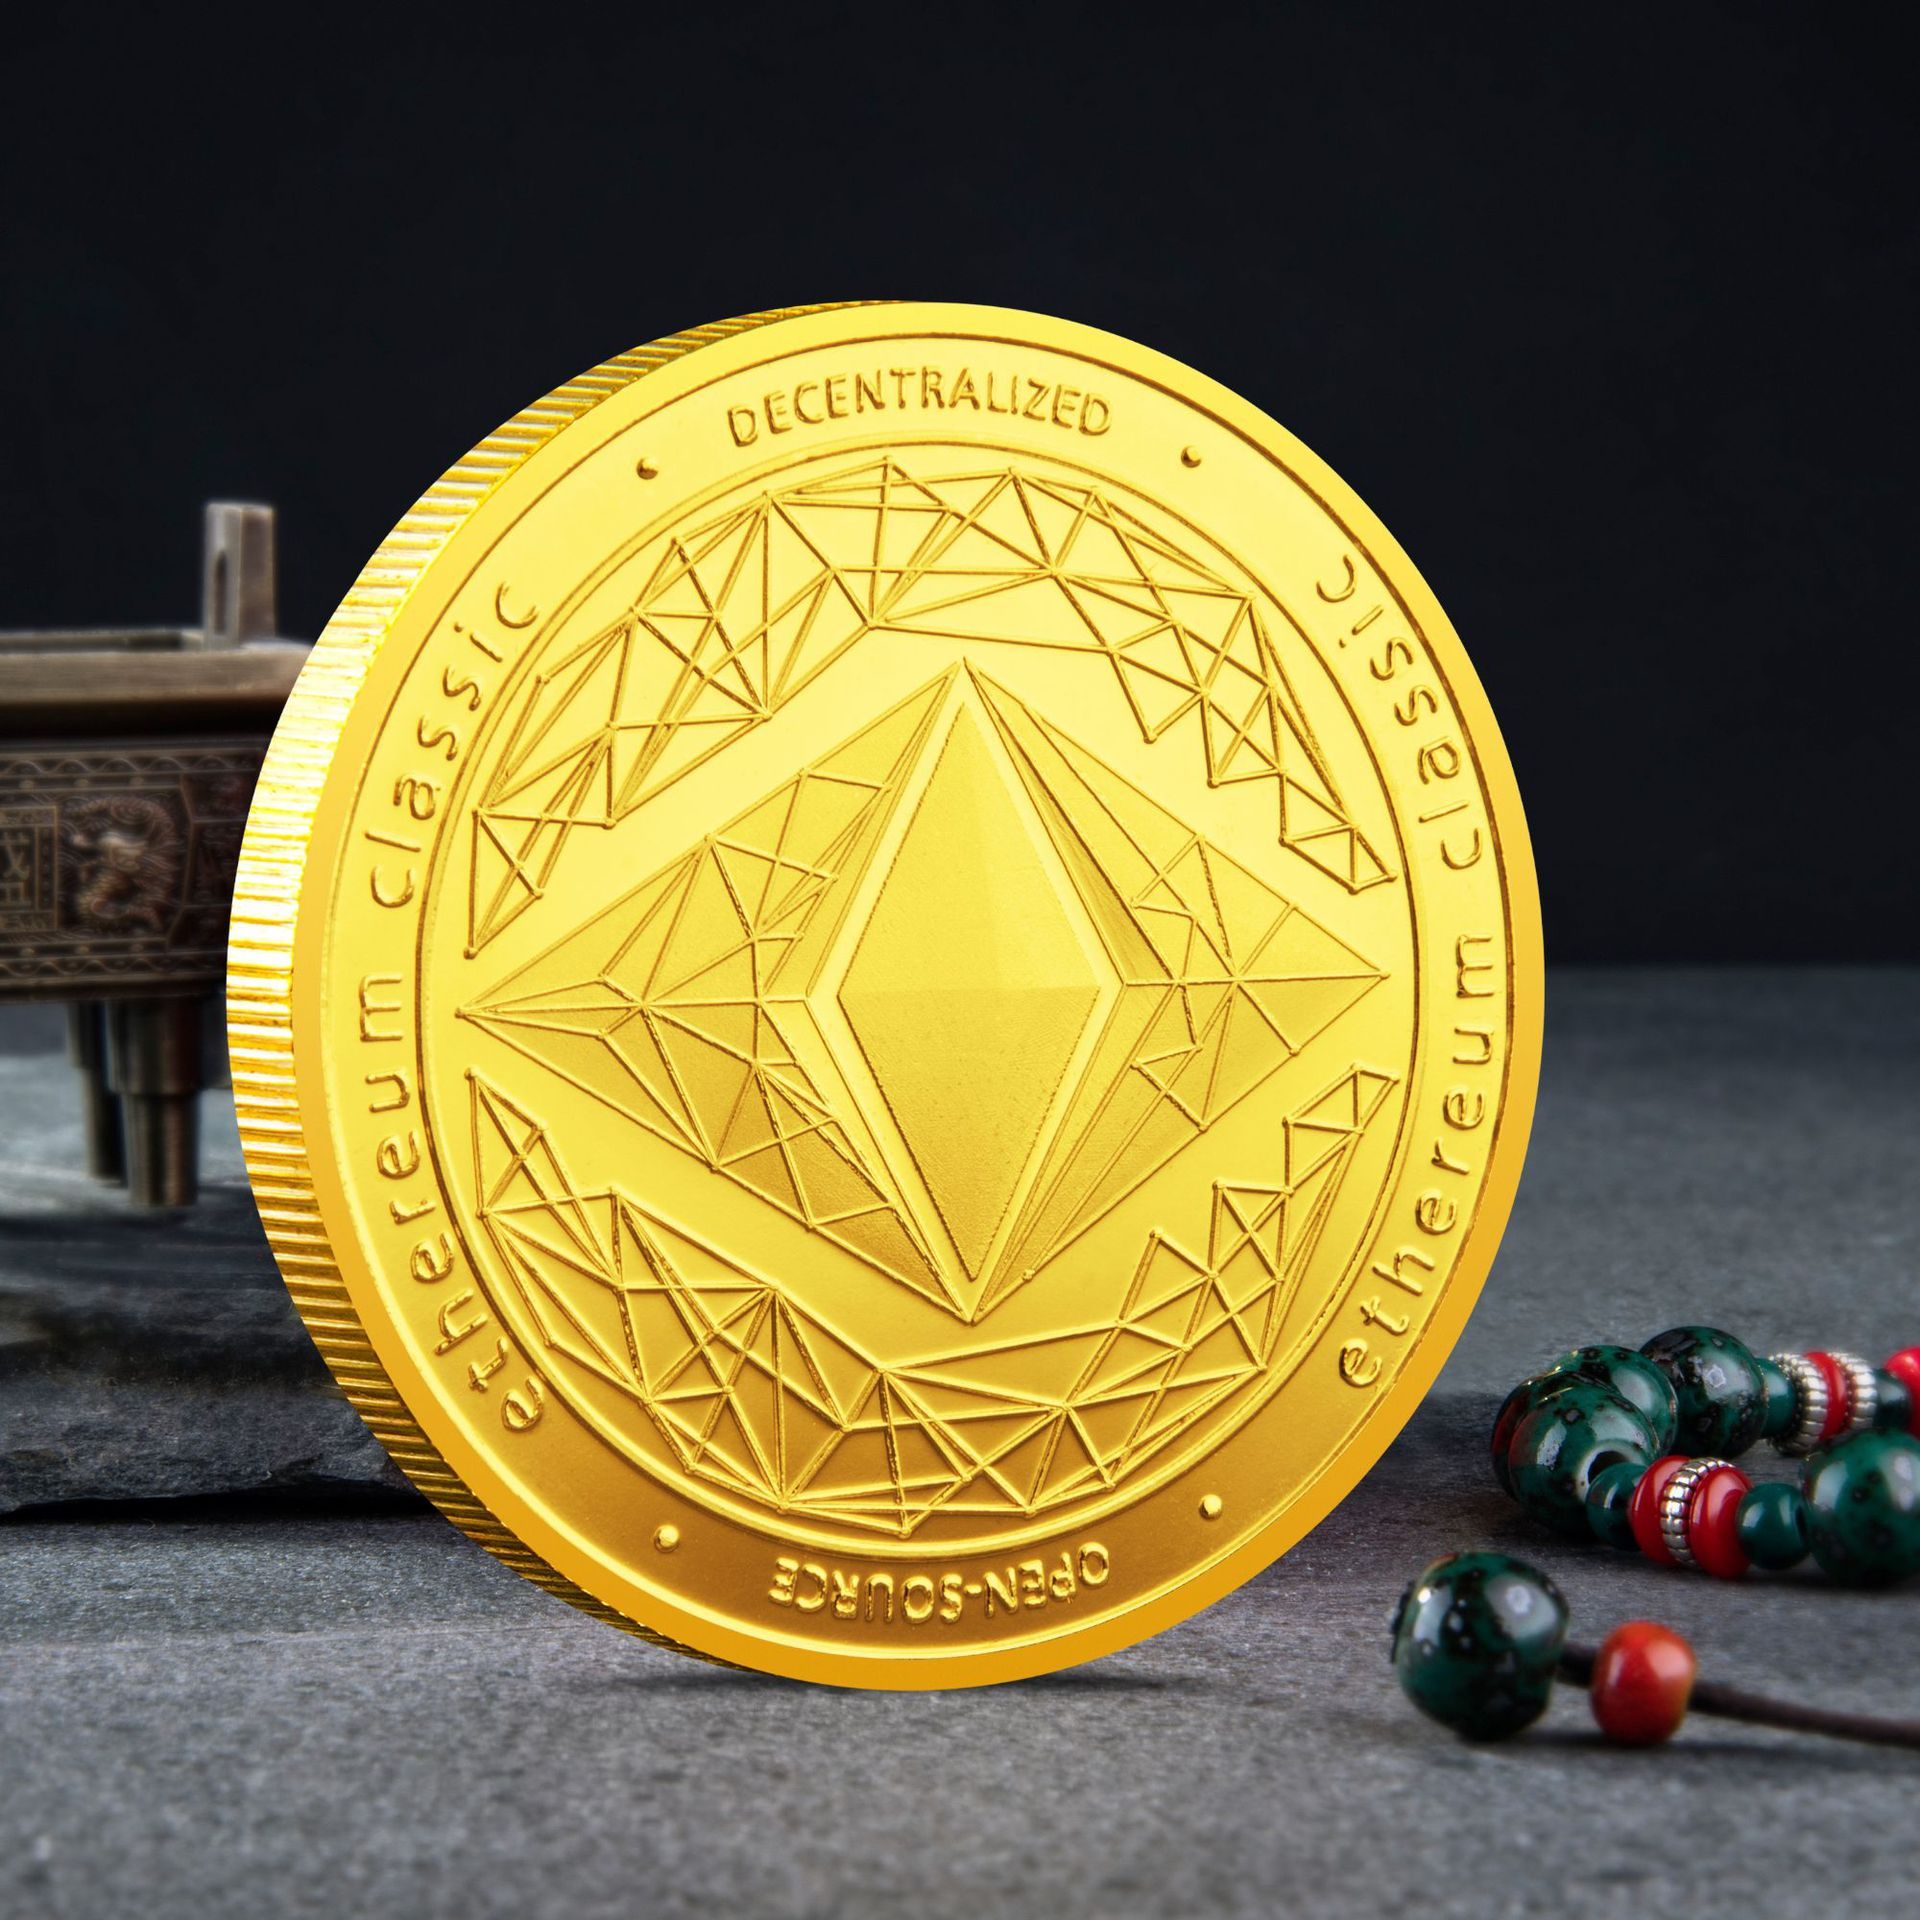 Ethereum Classic Souvenir Coin Physical Cryptocurrency Coin Gold Plated Gift Commemorative Coin Collection Art Ethereum Coin